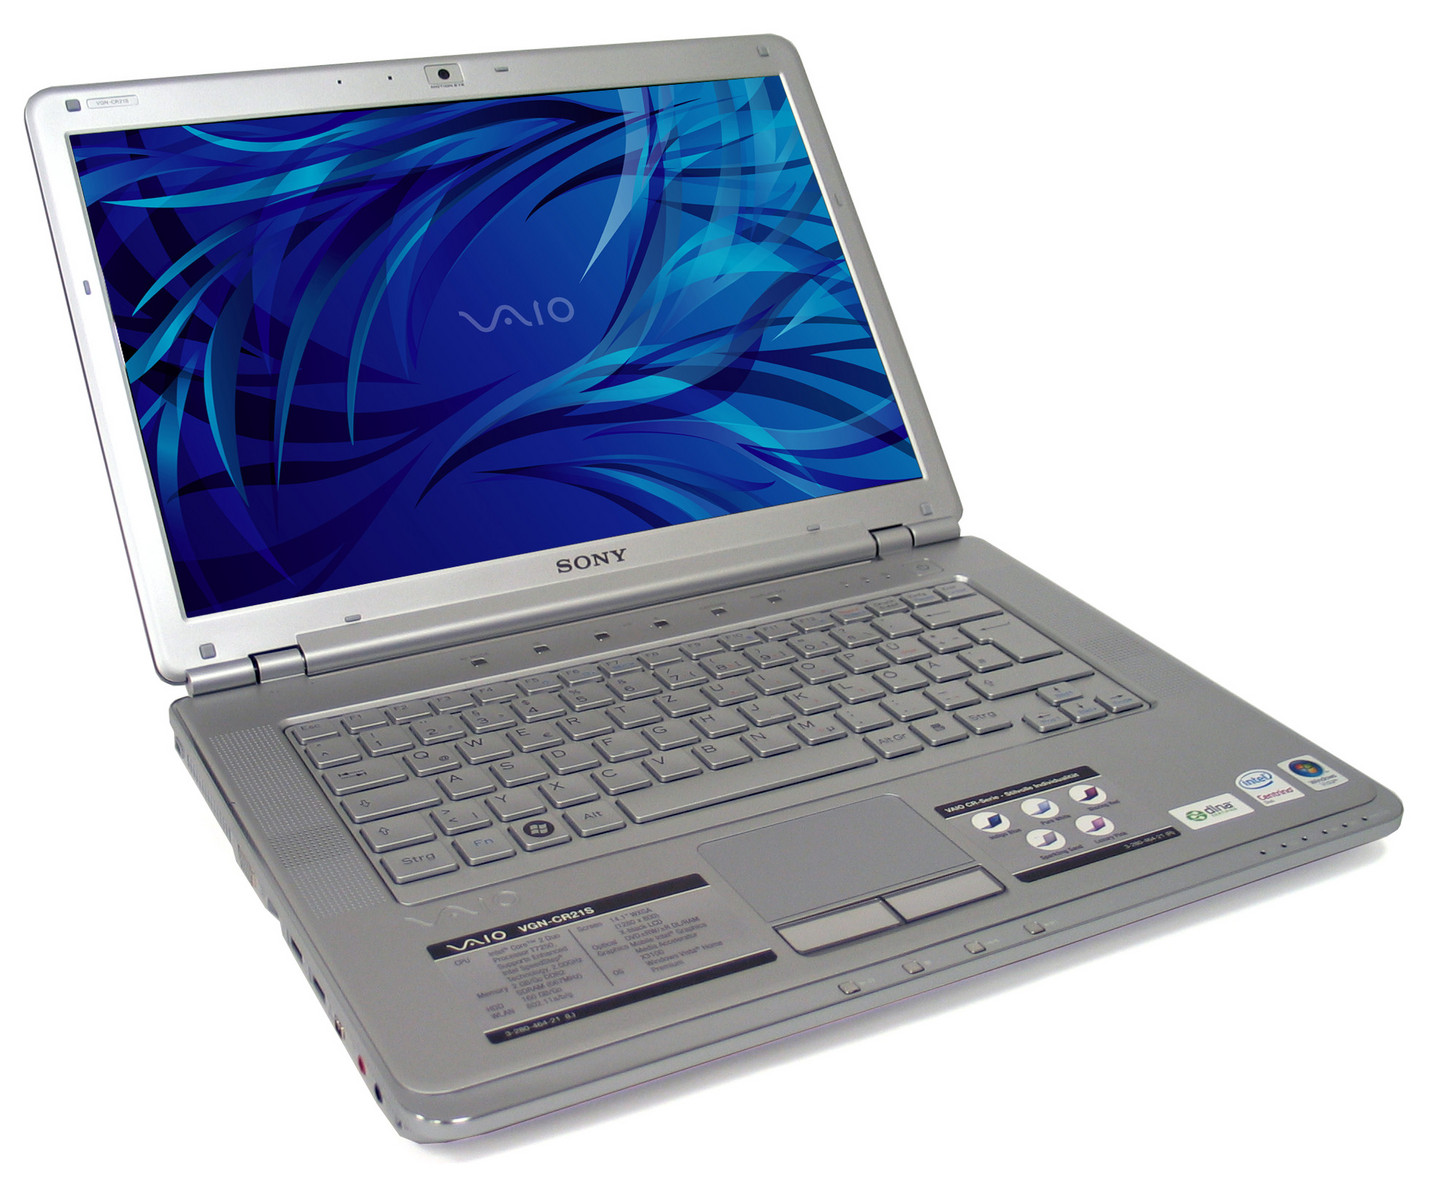 SONY VAIO VGN-CR21S DRIVER FOR WINDOWS